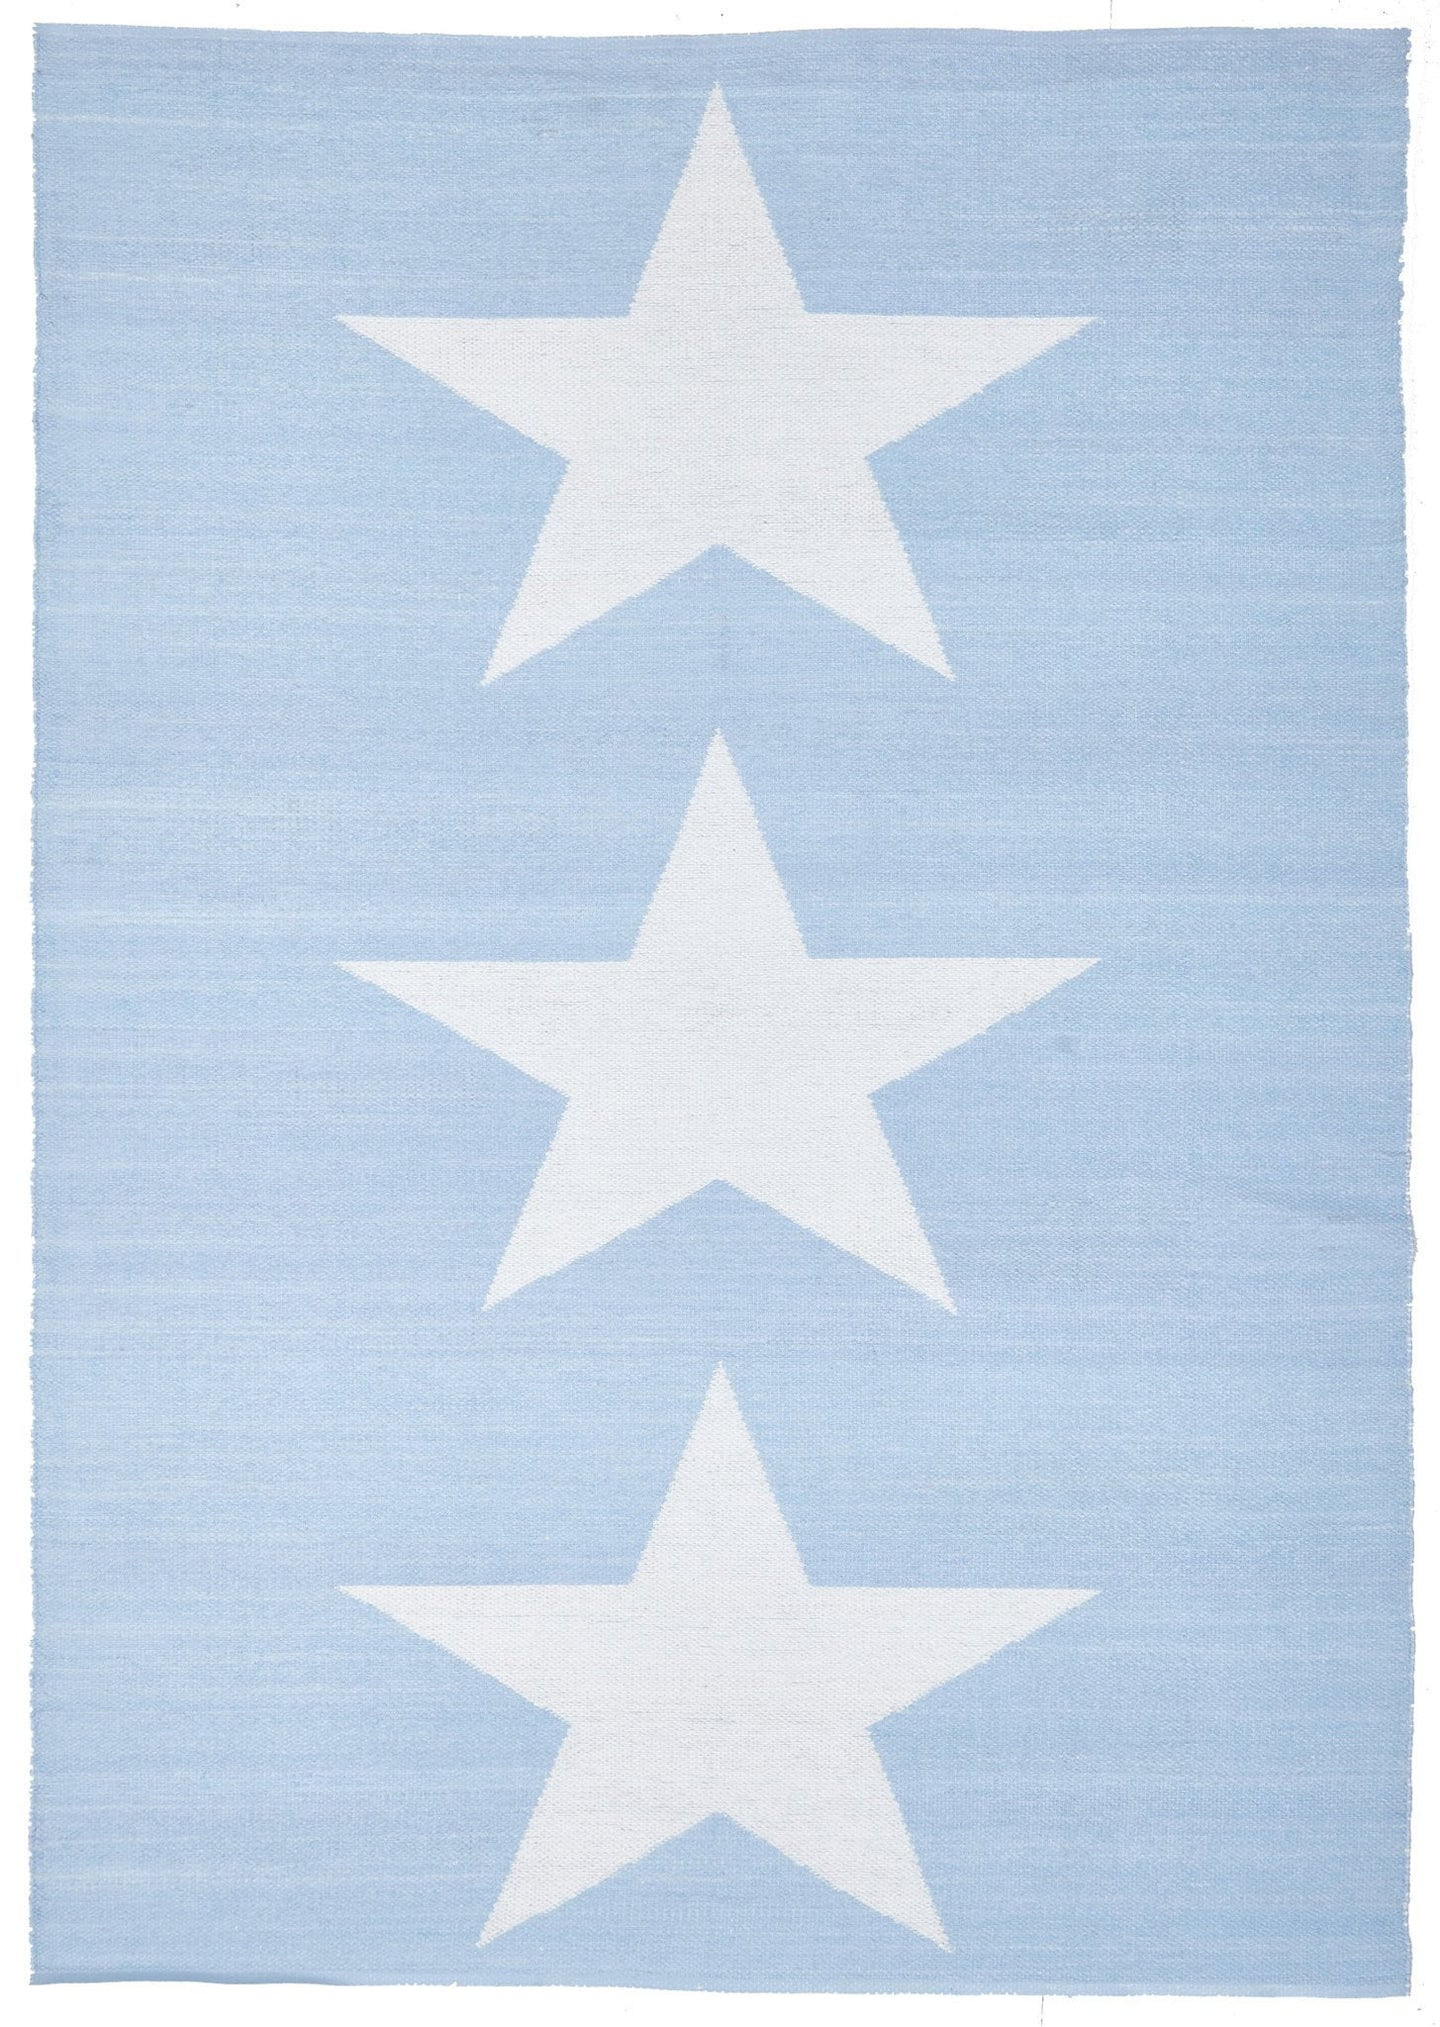 Coastal Indoor Out door Rug Star Sky Blue White